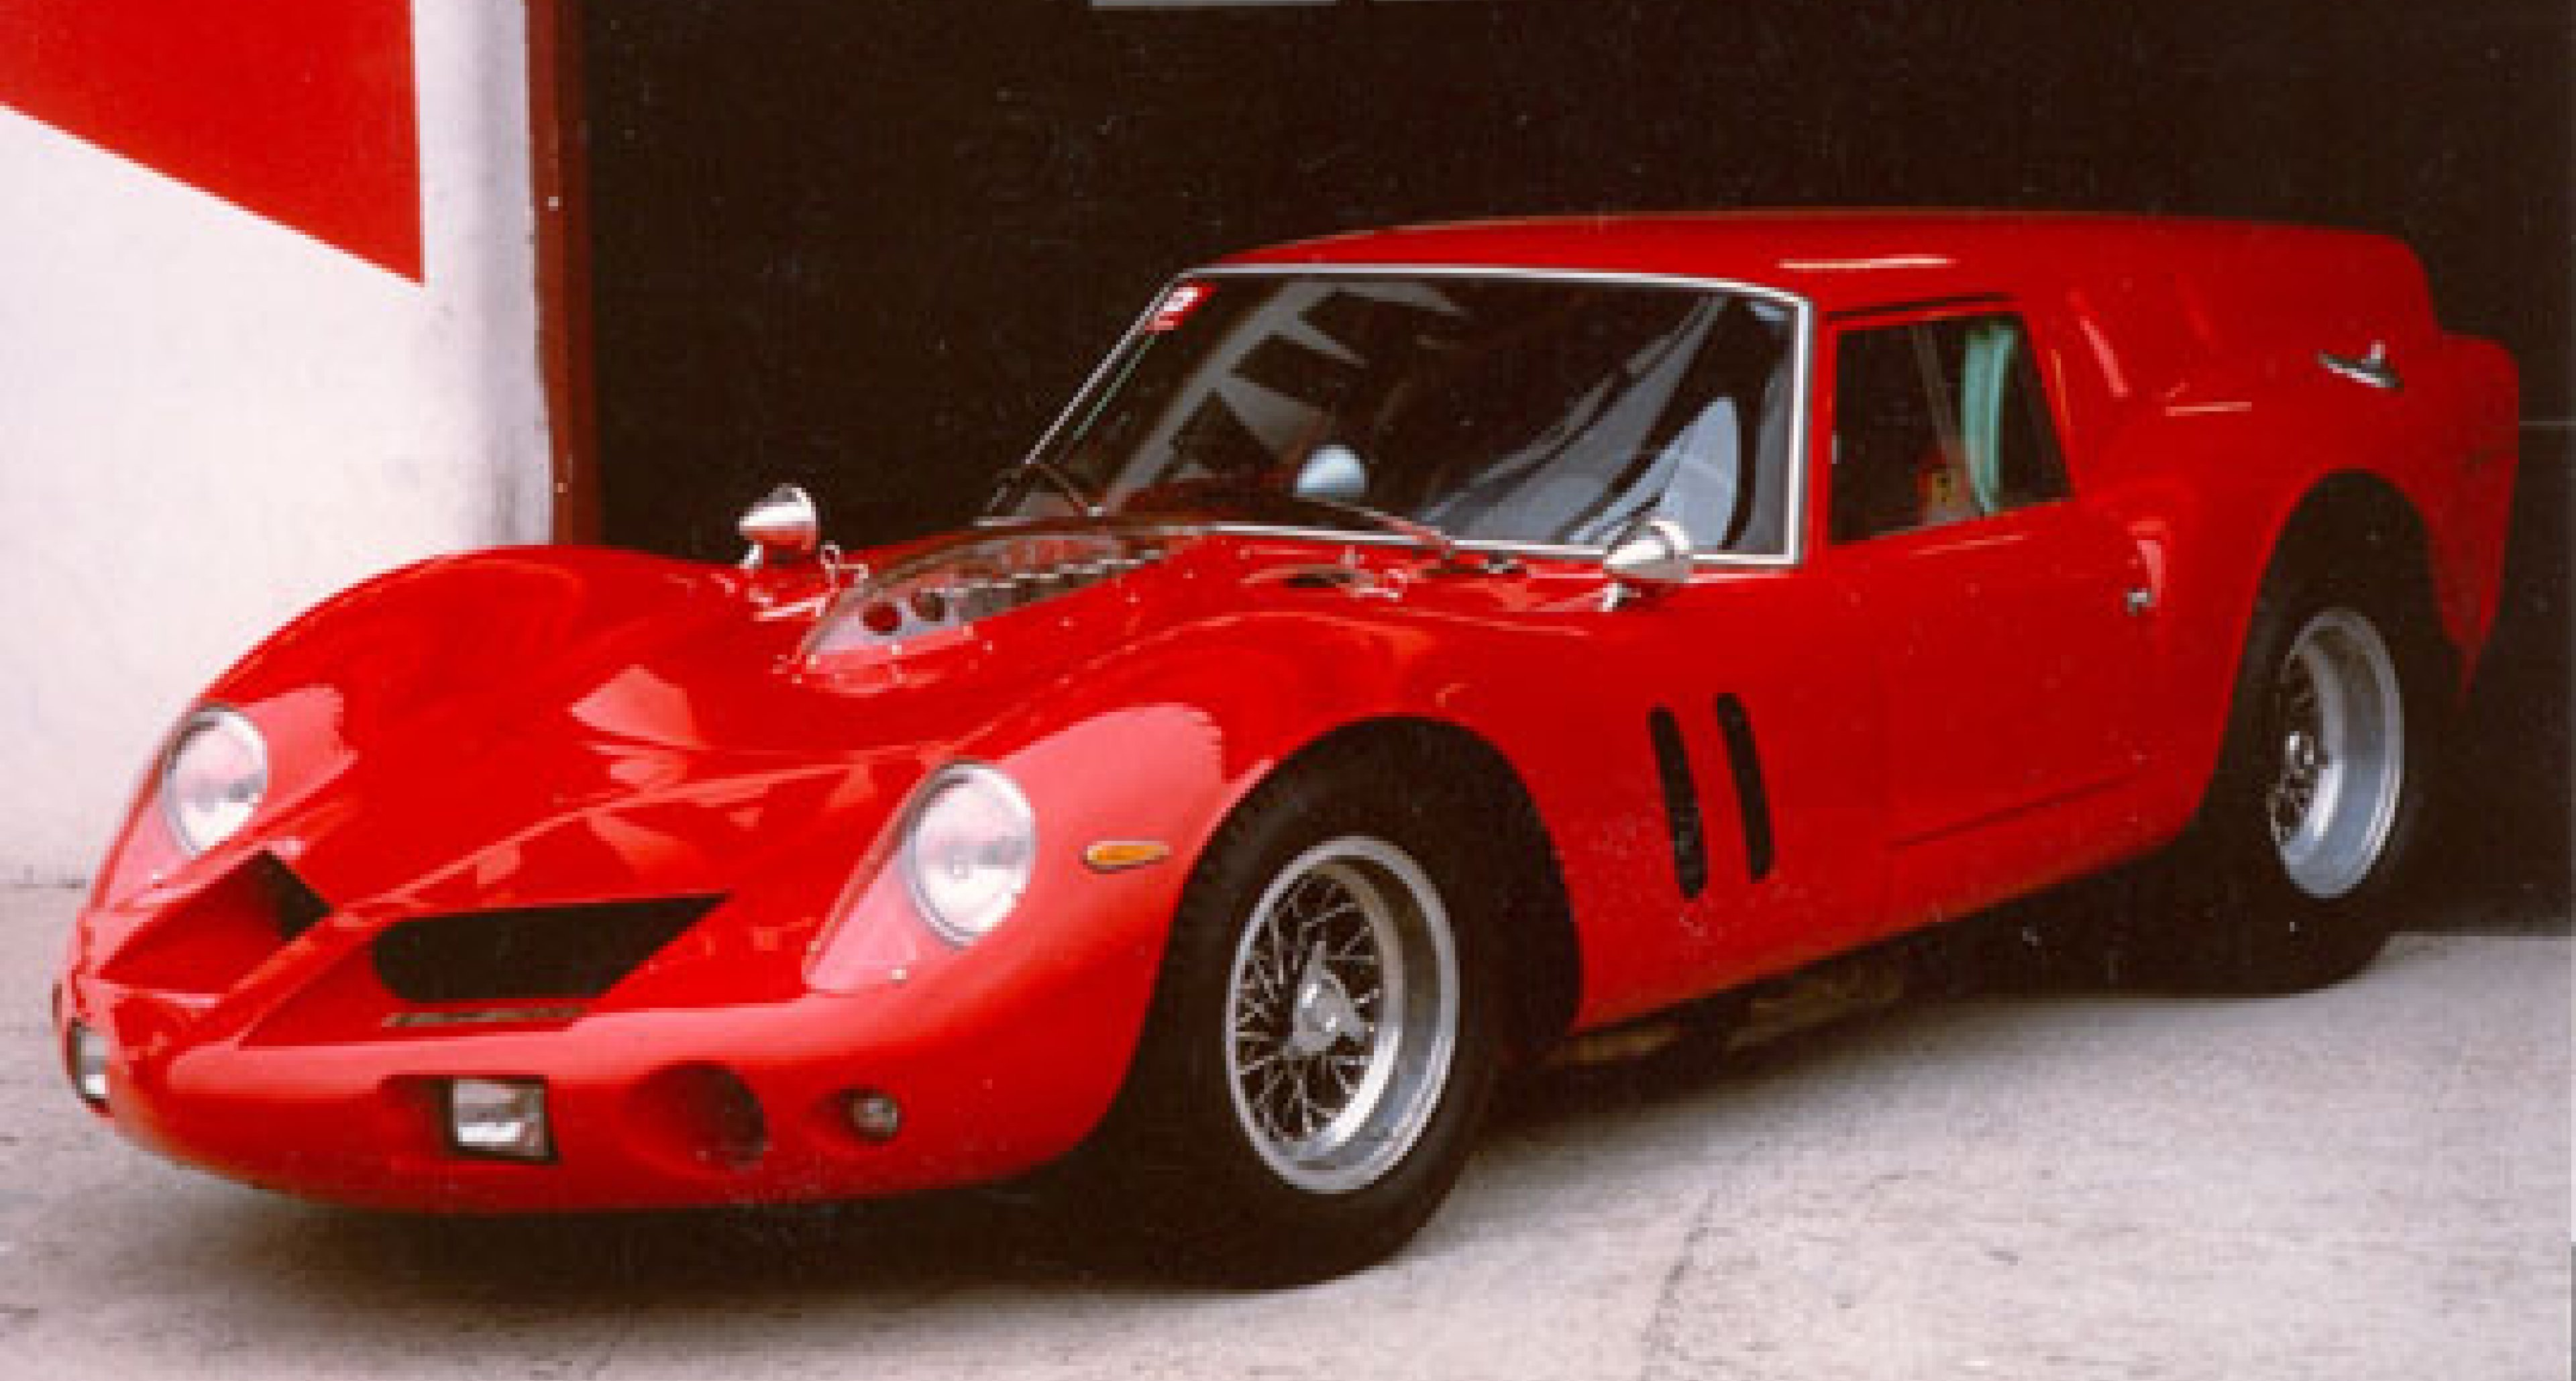 Christie's to auction legendary GT Ferrari at Monterey this August